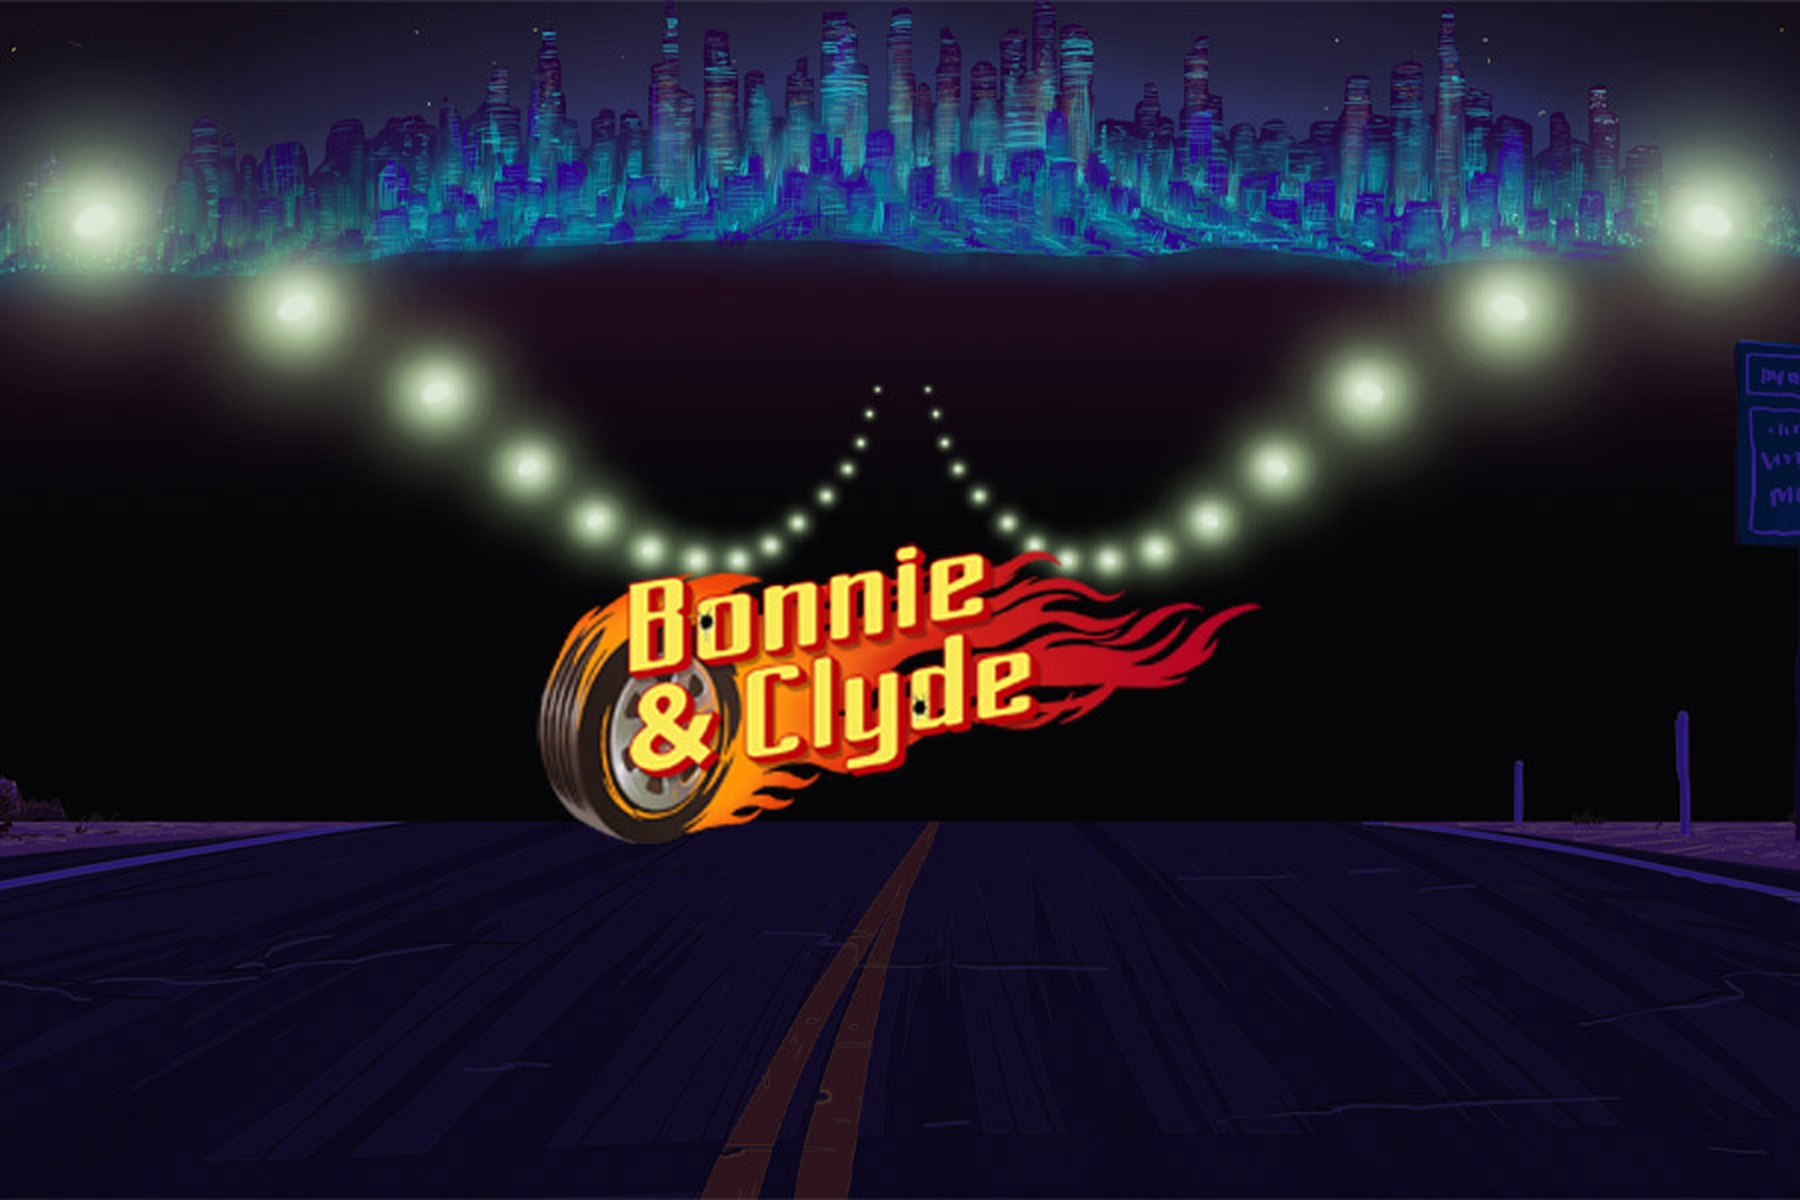 Bonnie clyde slot machine online bf games songs